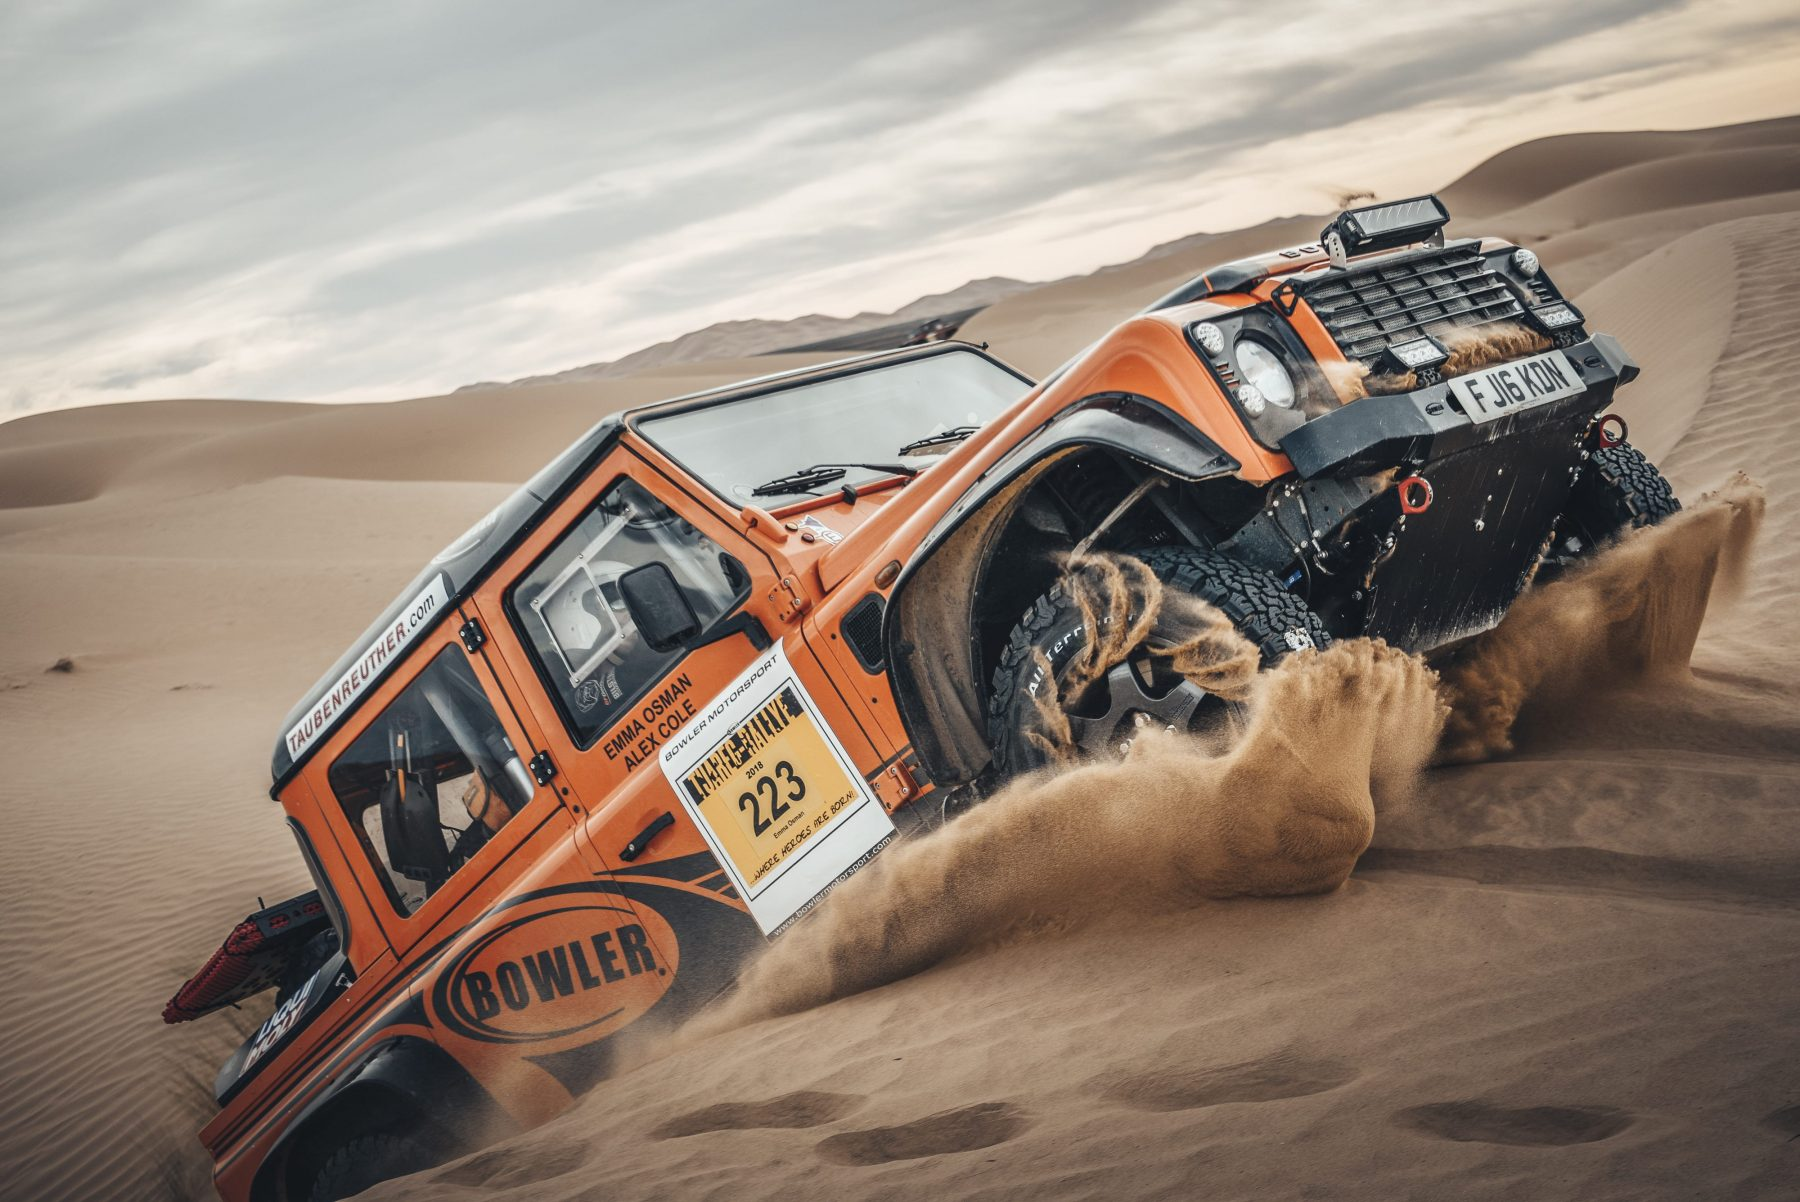 Tuareg Rally Champion Announced as Bowler's Test & Development Driver